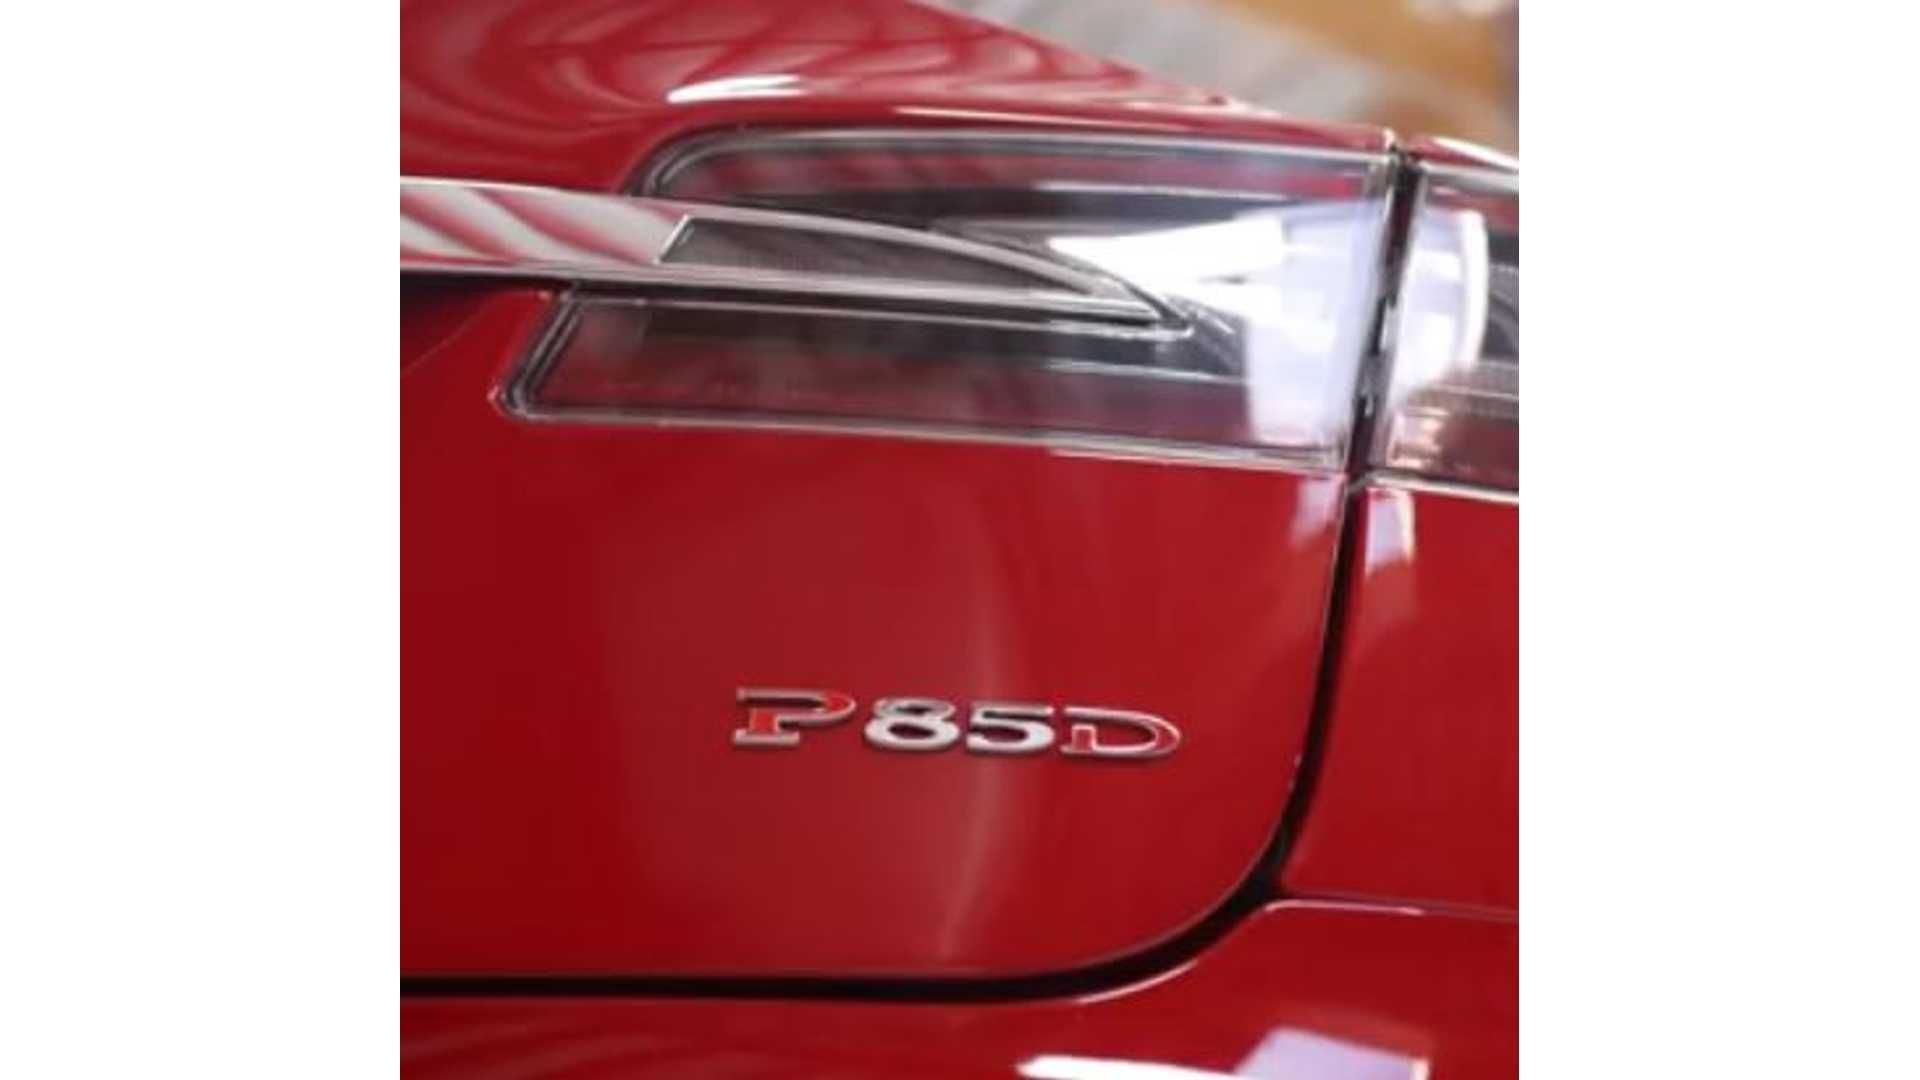 Tesla Model S P85d Firmware Update To Cut 0 60 Mph Time To